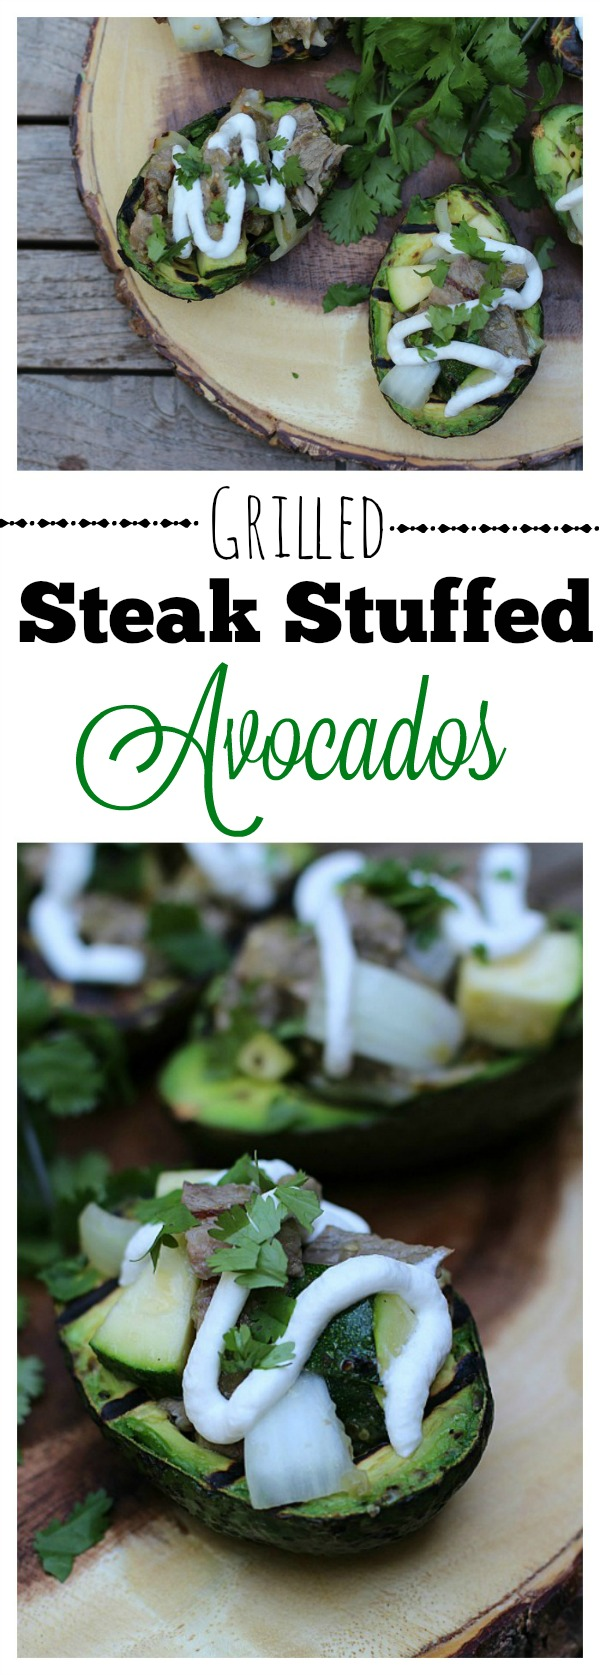 #AuthenticSalsaStyle #ad Grilled Steak Stuffed Avocados Final